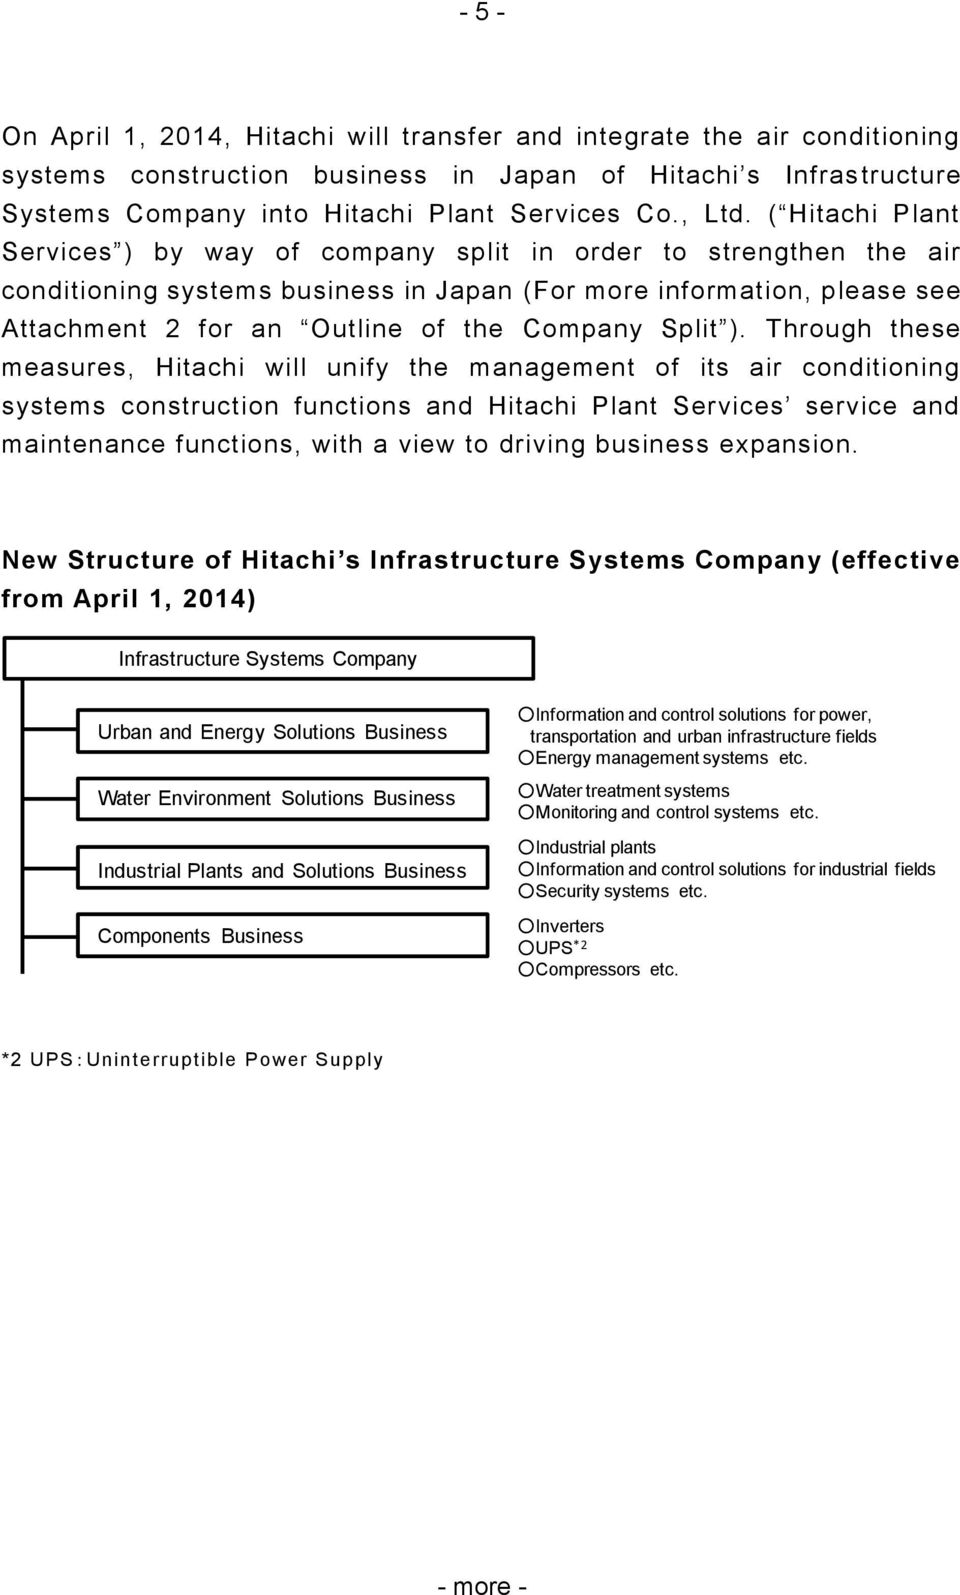 ( Hitachi Plant Services ) by way of company split in order to strengthen the air conditioning systems business in Japan (For more information, please see Attachment 2 for an Outline of the Company